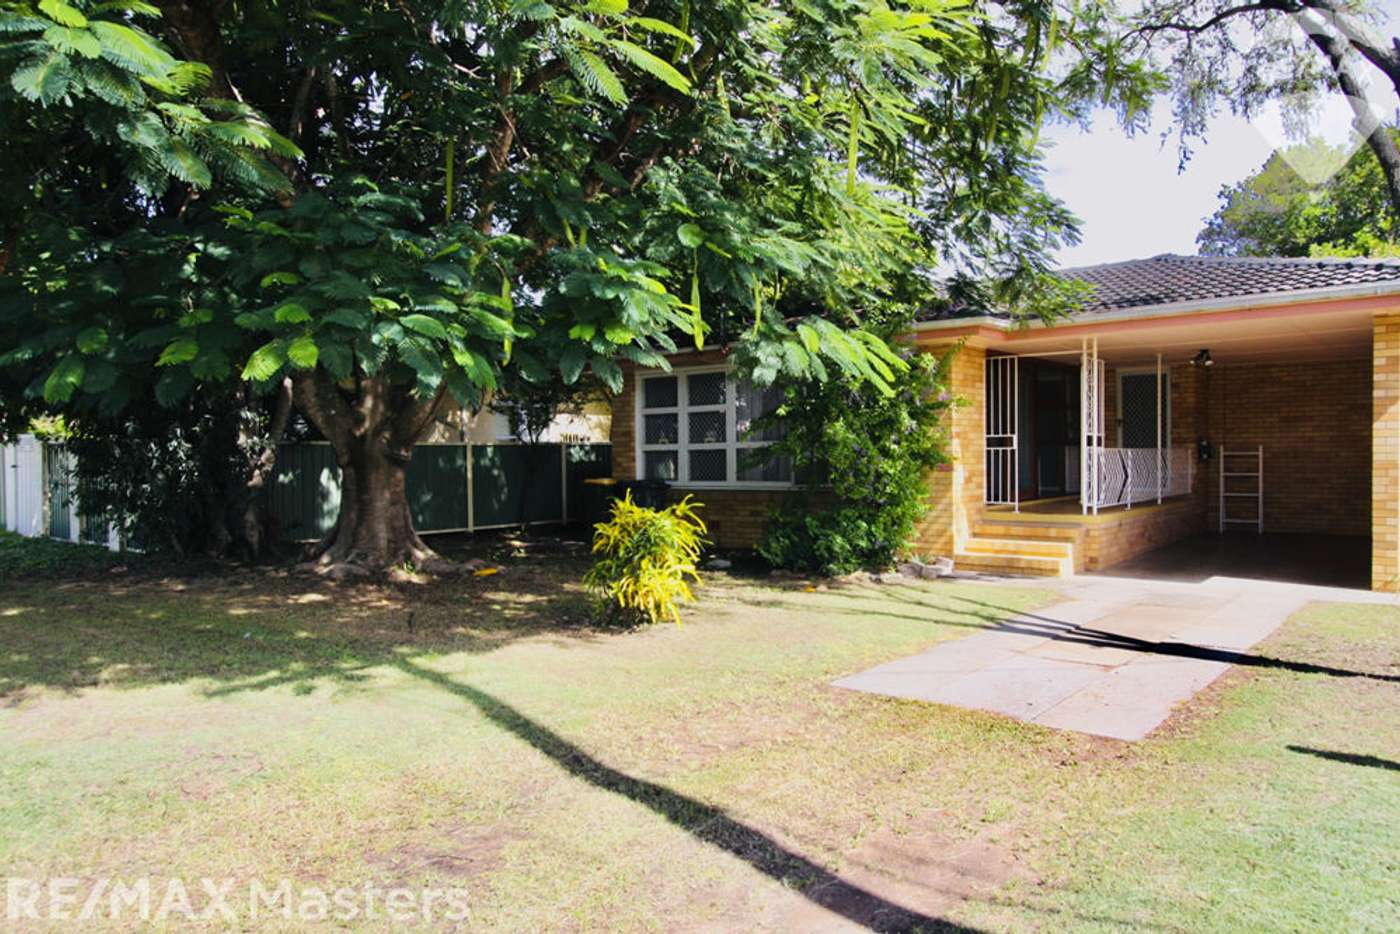 Main view of Homely house listing, 67 Mitchell Street, Sunnybank QLD 4109